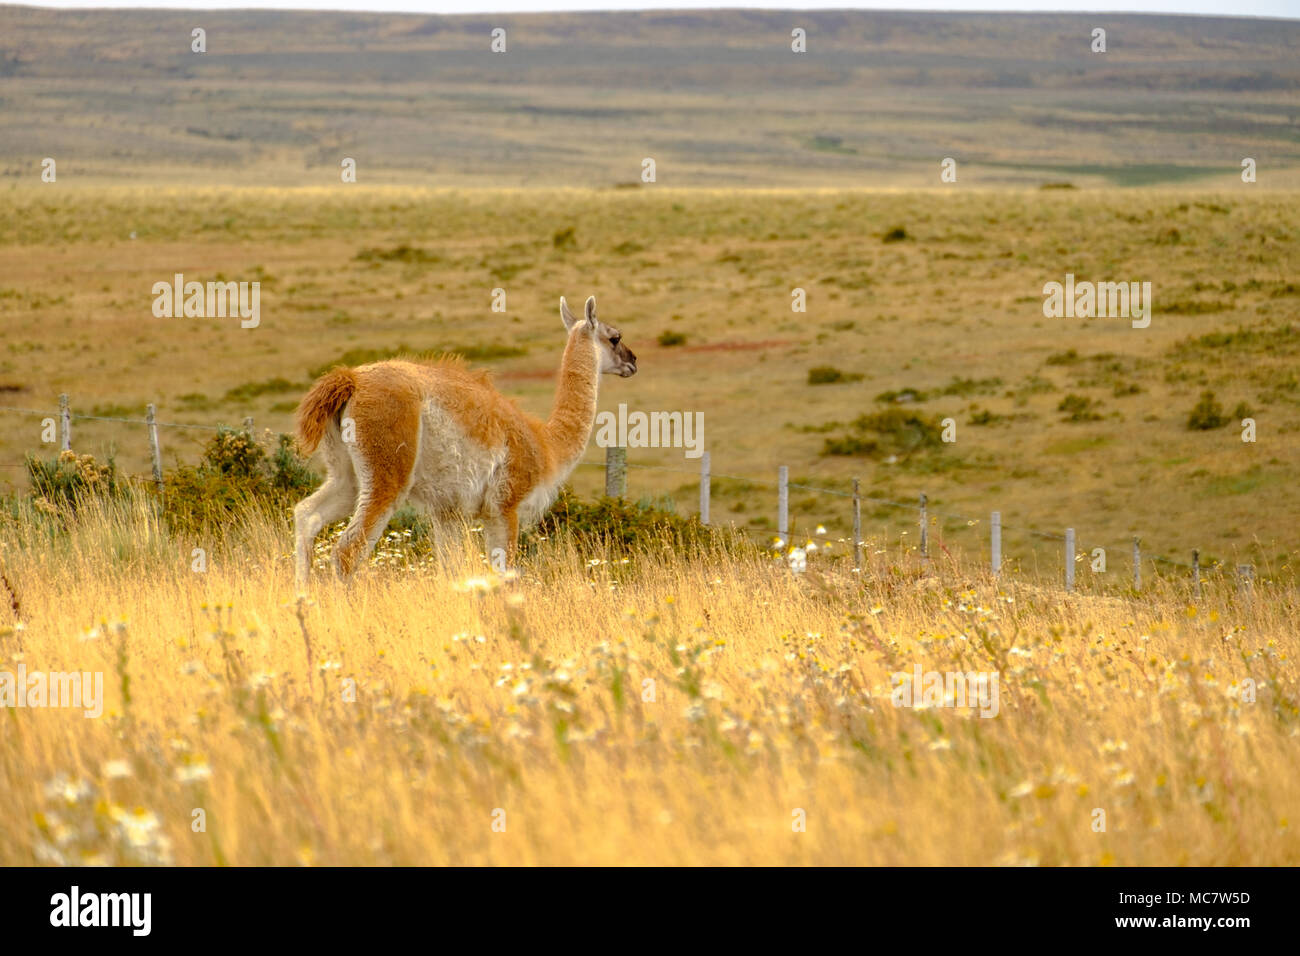 A guanaco moves through the Patagonian fields near Punta Arenas, Chile. - Stock Image